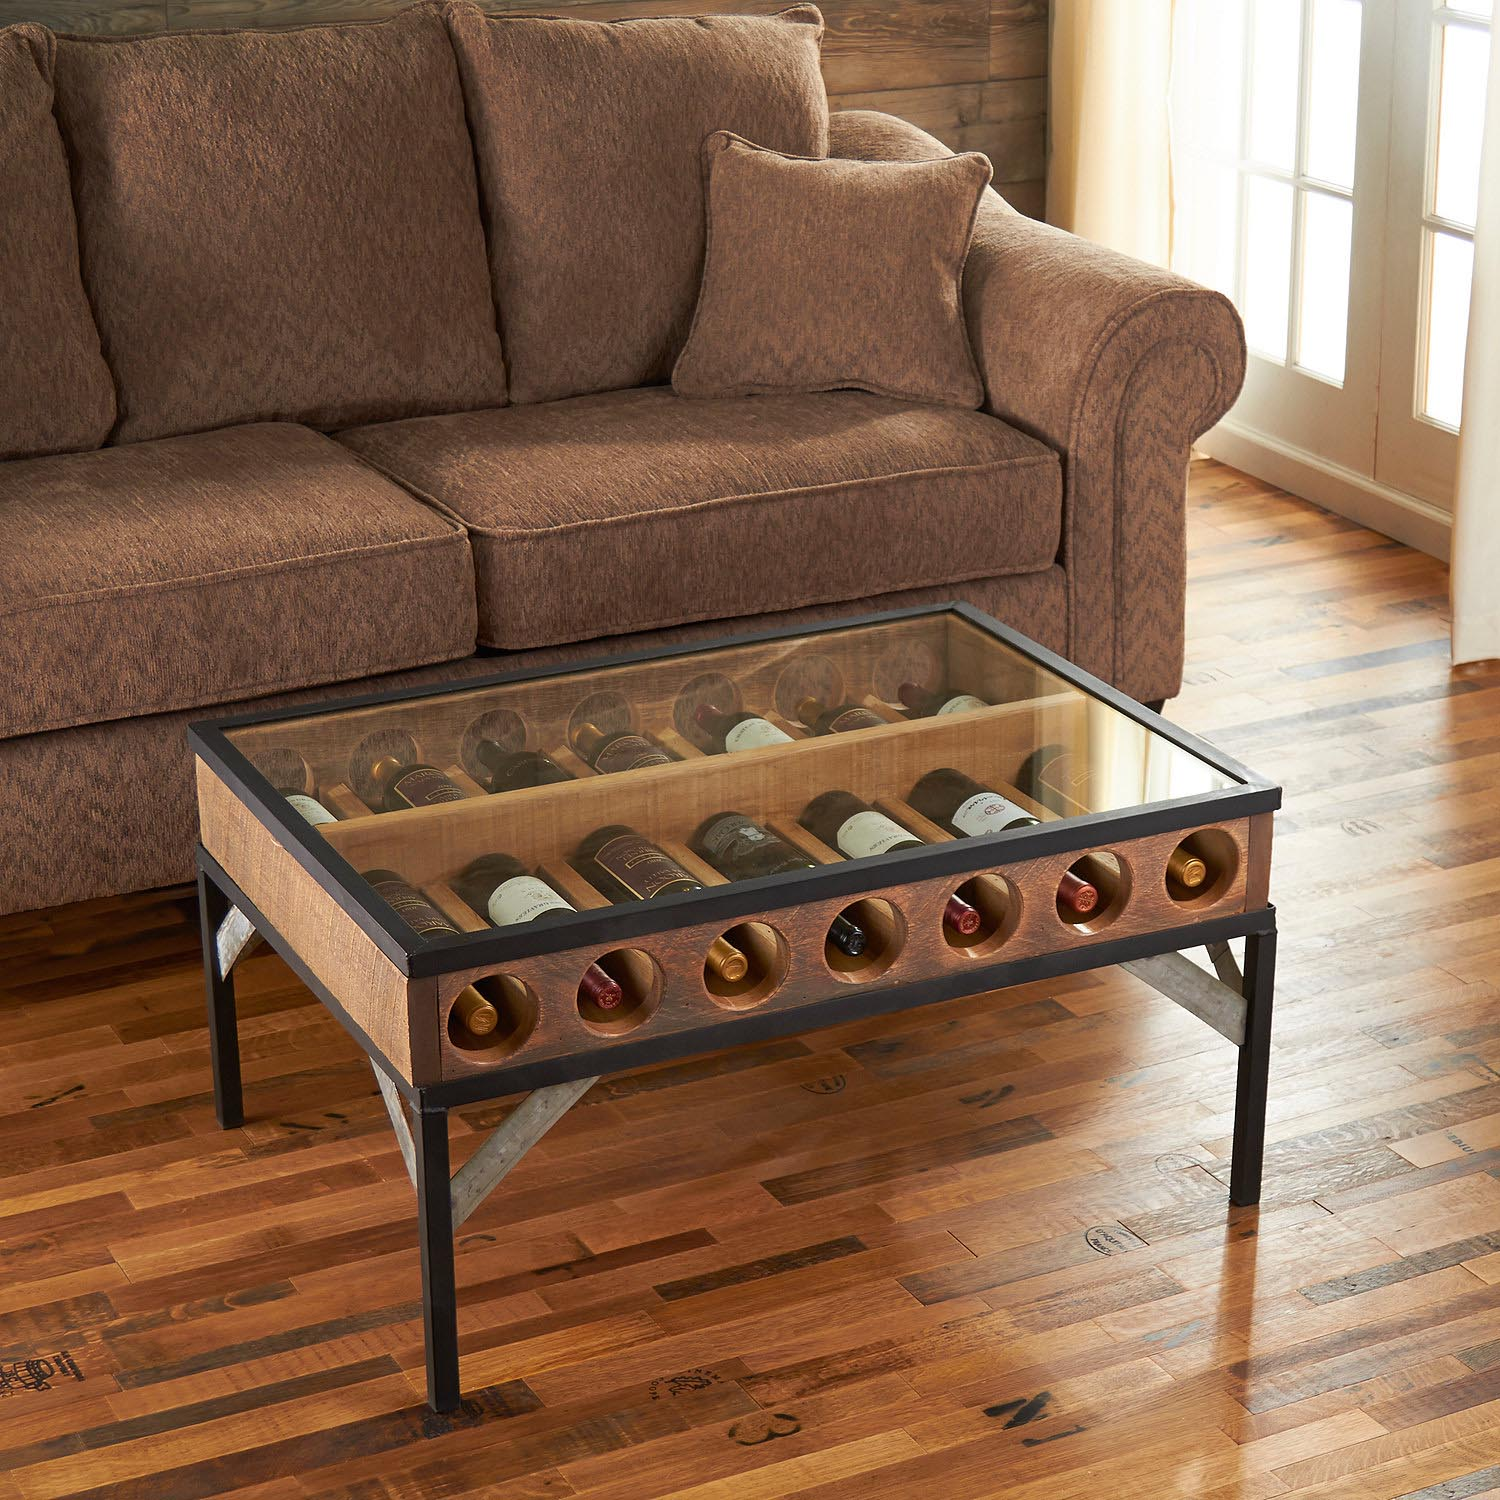 Display Coffee Table Unmatched Furniture Creation Coffee Table Design Ideas